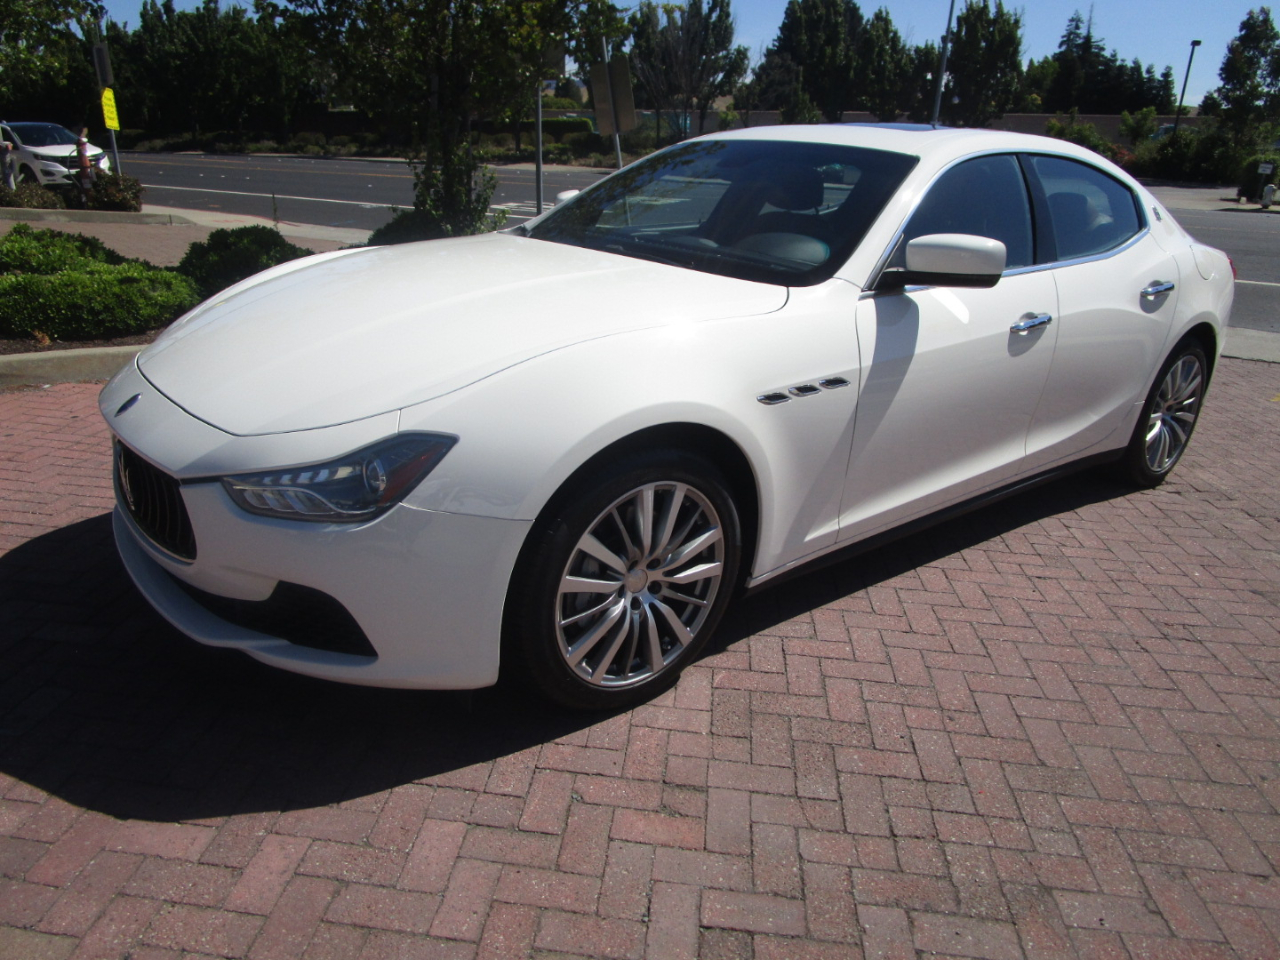 2016 Maserati Ghibli PREMIUM PKG*NAVIGATION**HEATED SEATS*SATELLITE RAD